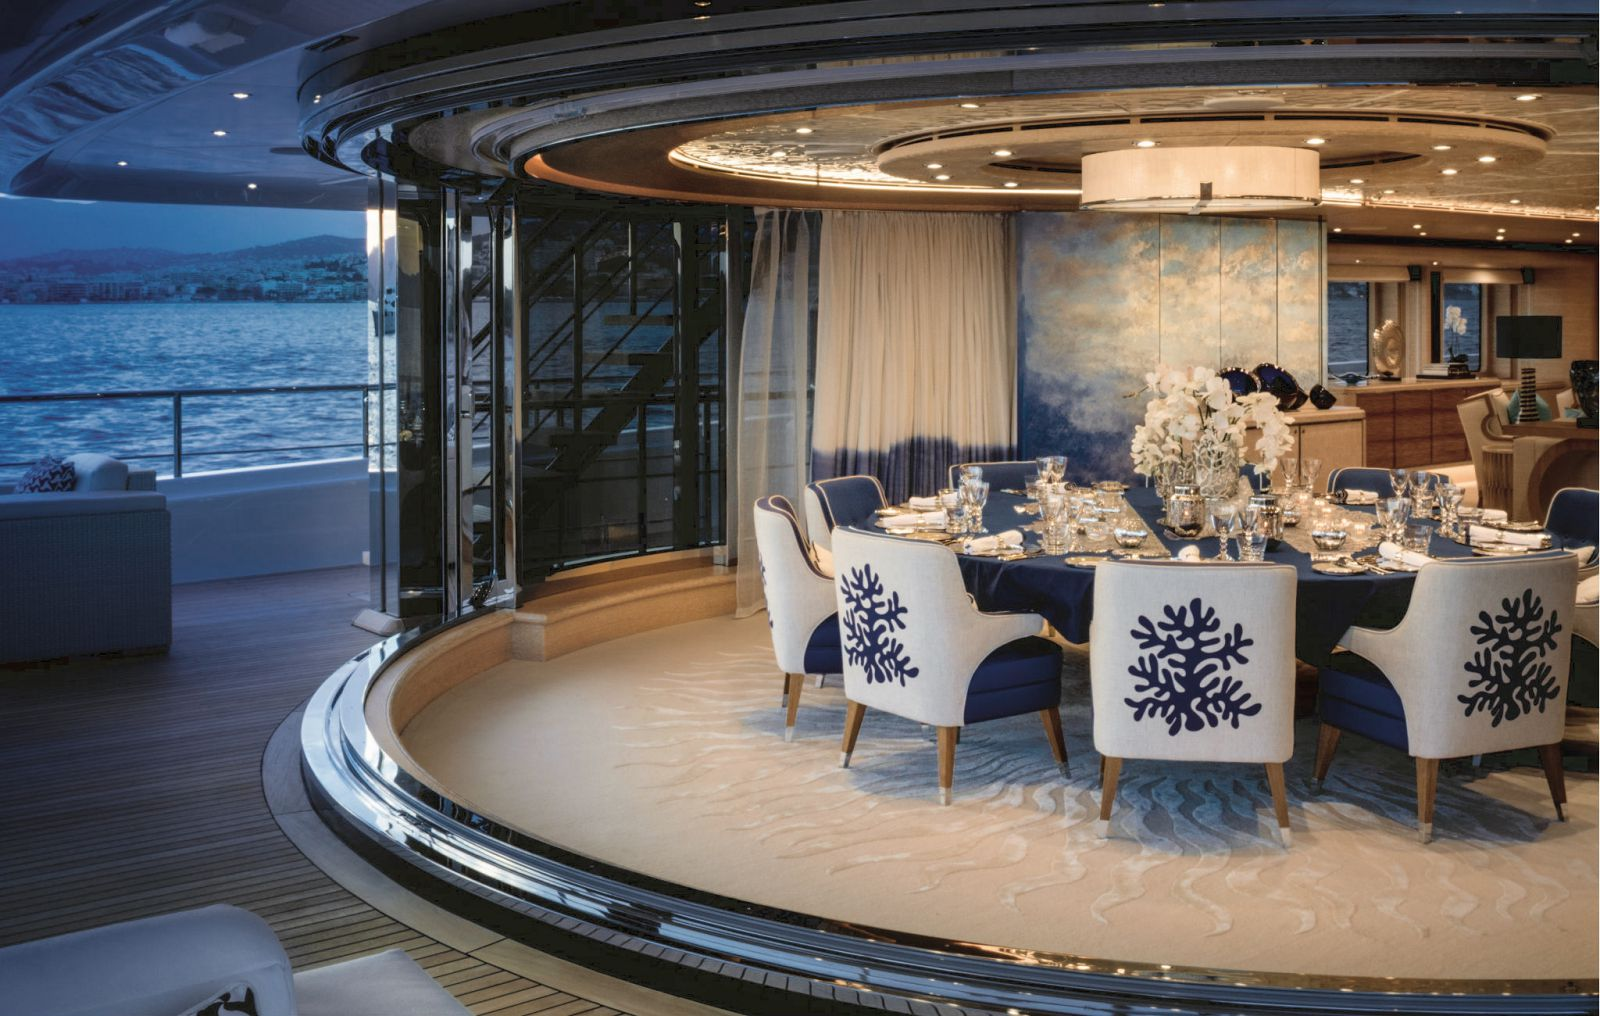 Interior image of the main salong dining area from the aft deck at night. >